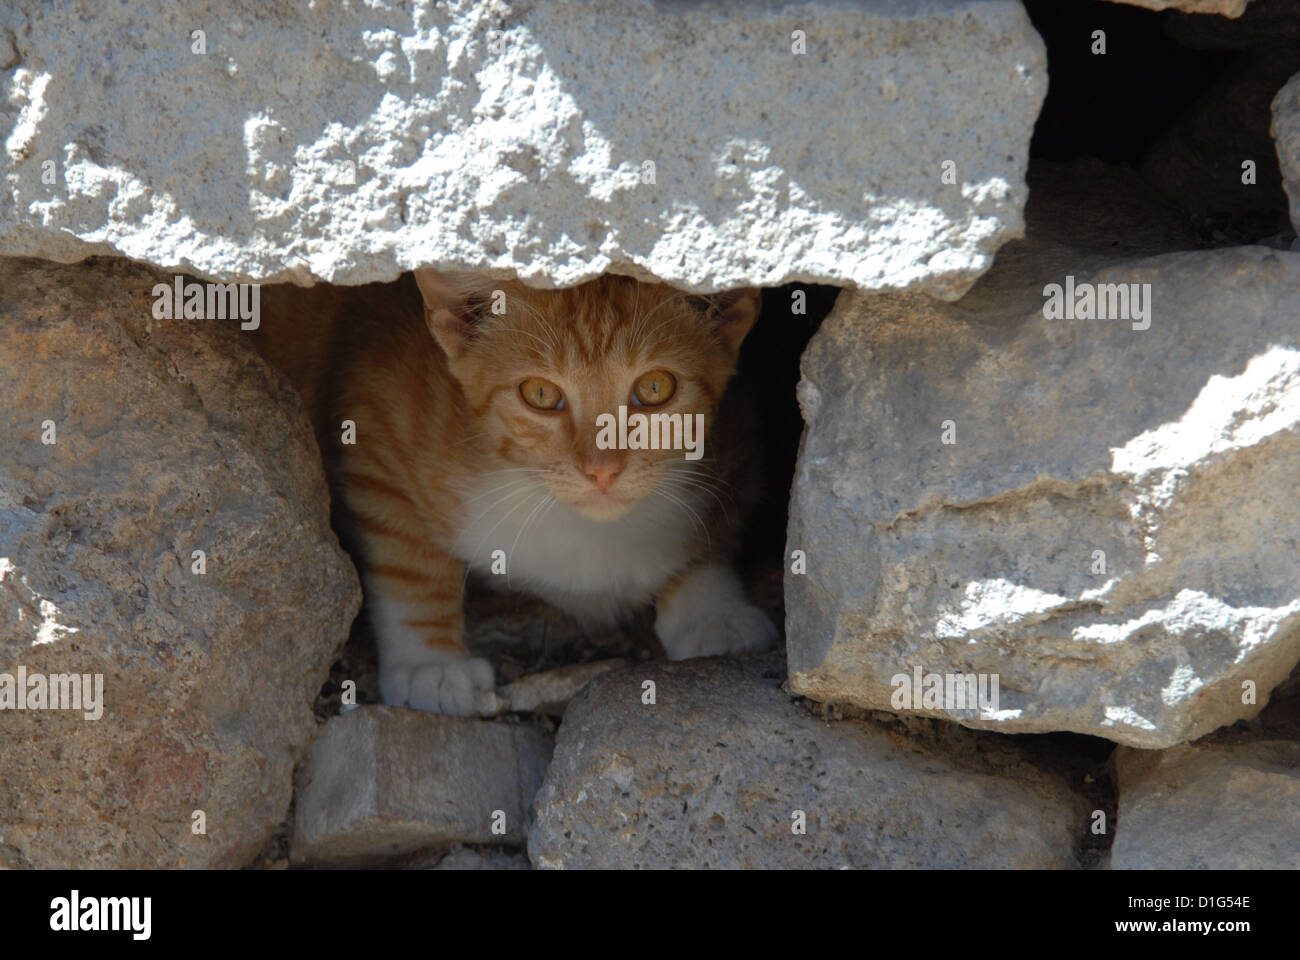 Red Tabby and White, portrait, Greece, Dodecanese Island, Non-pedigree Shorthair, felis silvestris forma catus, - Stock Image